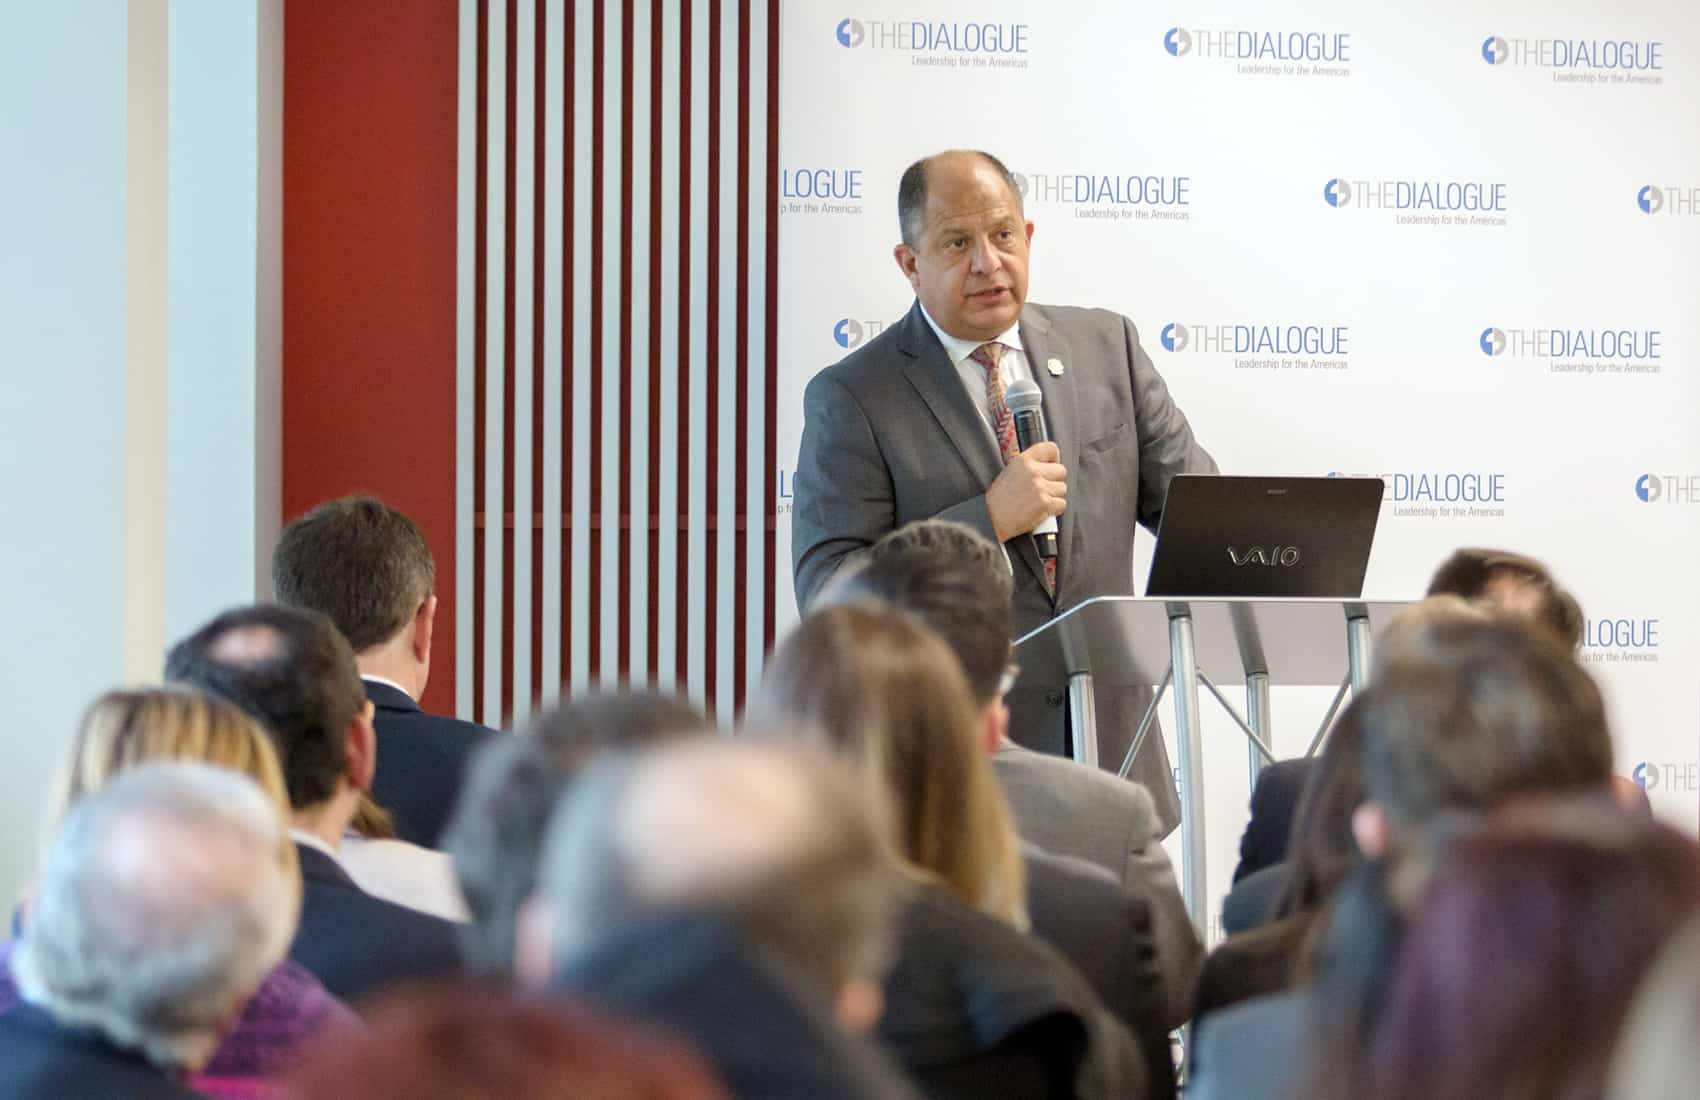 President Luis Guillermo Solís at The Dialogue, Washington. March 16, 2017.